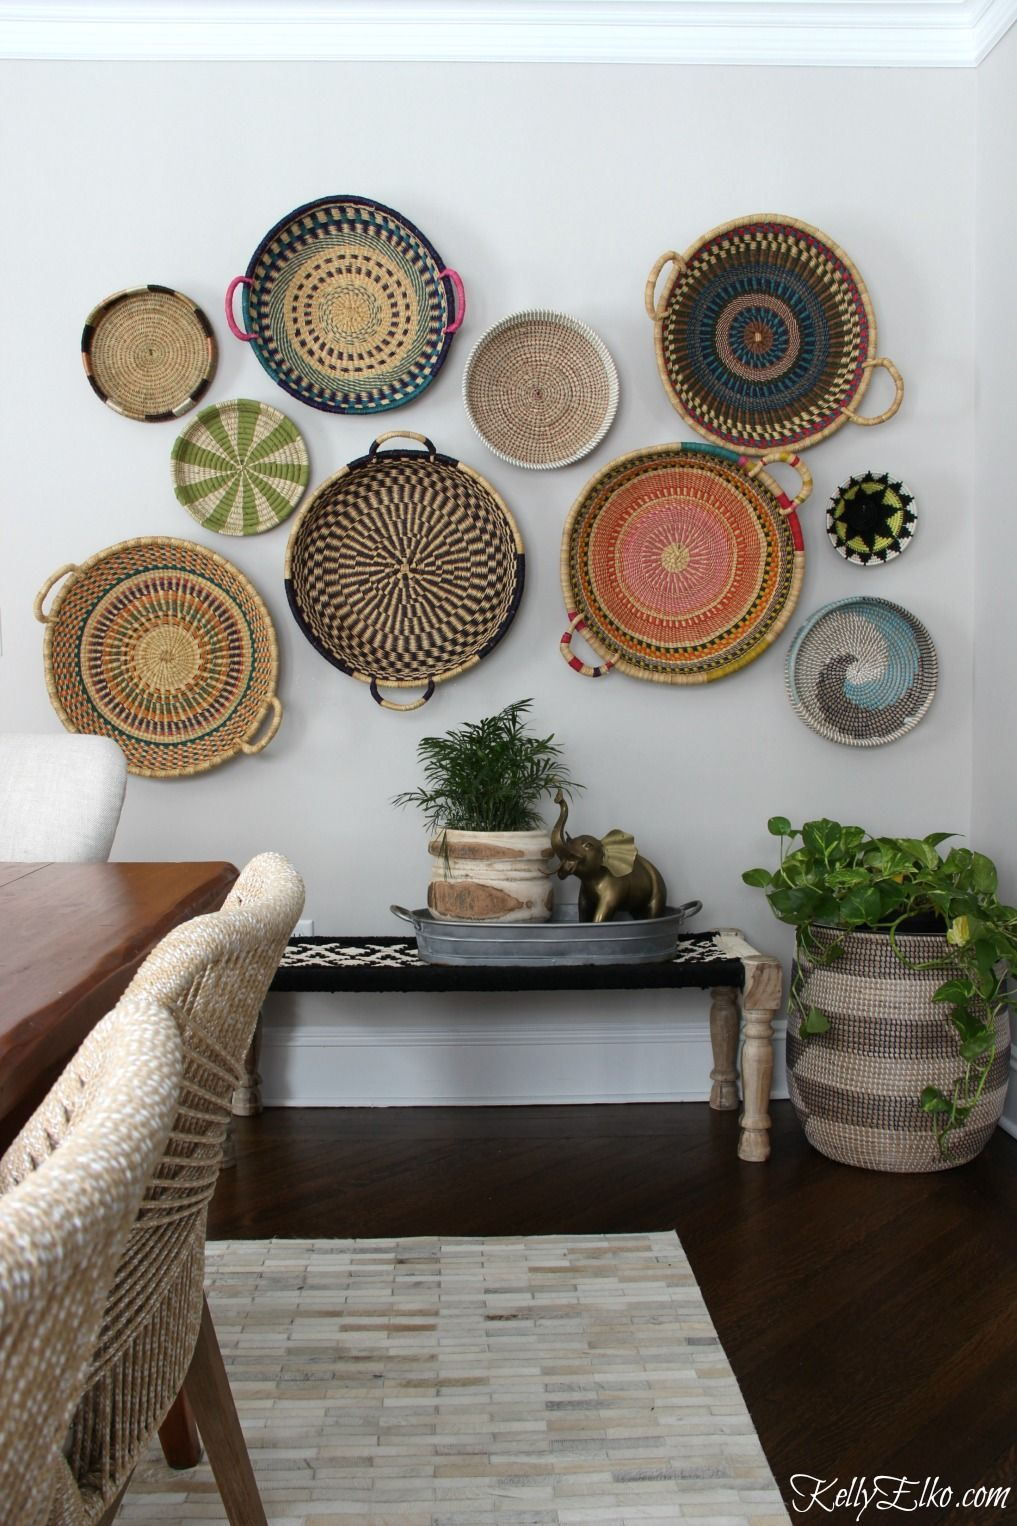 A Convenient As Well As Imaginative Collection Of 25 Outstanding And Easy Diy Wall Designing Ideas That Will Abso African Baskets Wall Decor Basket Wall Decor